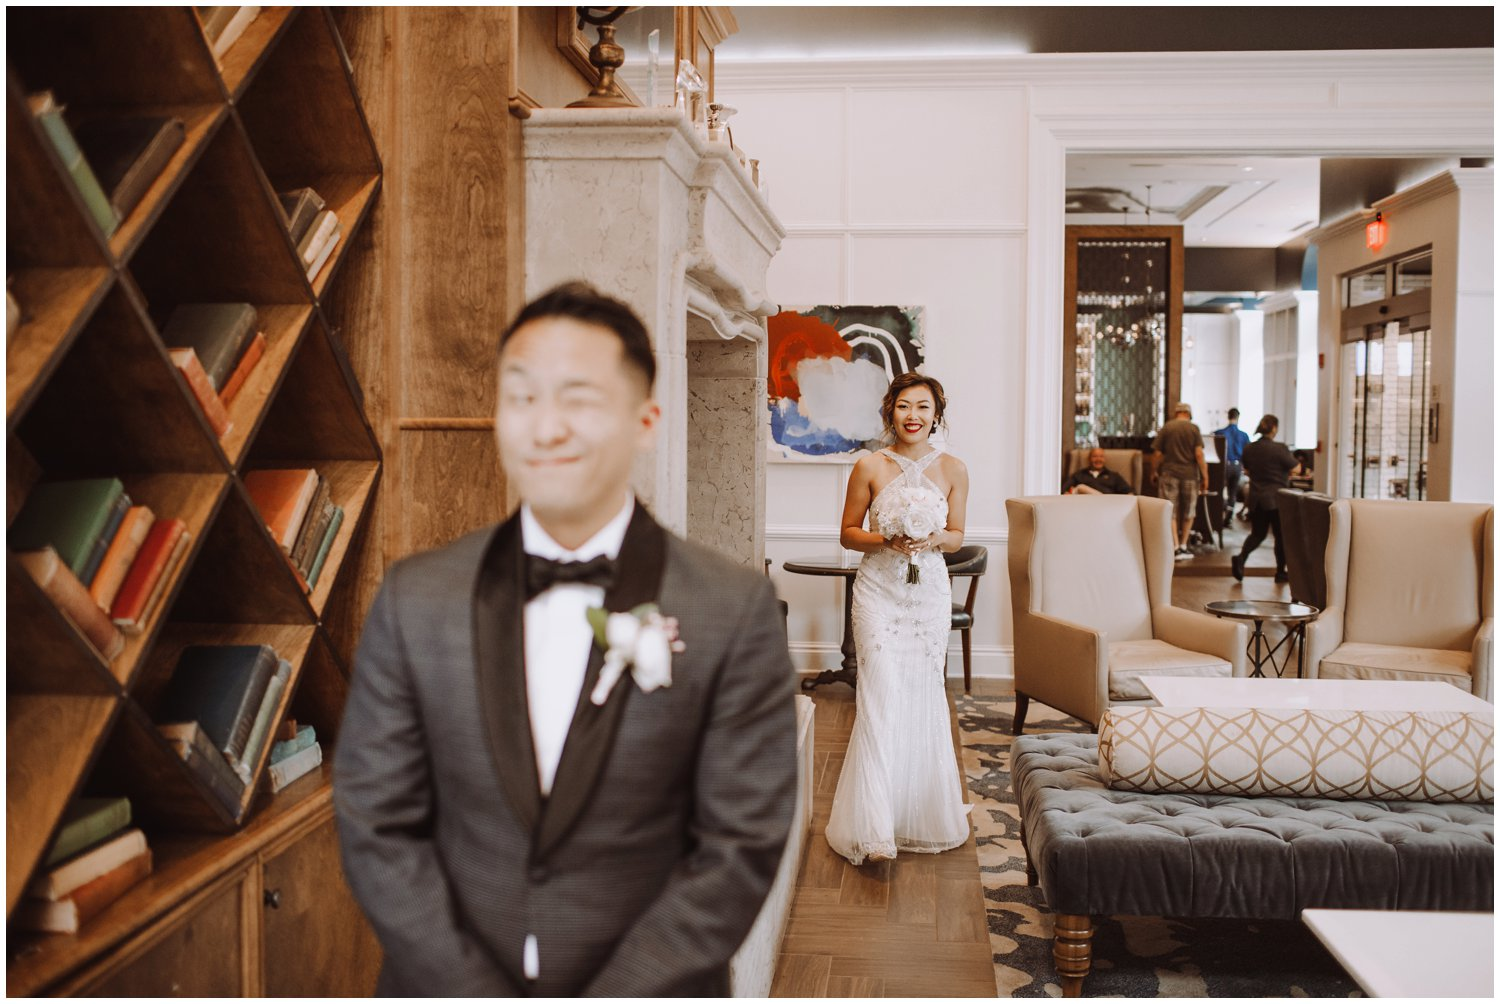 Peabody Library Wedding | Hotel Revival Baltimore Wedding | Art Deco Wedding | Baltimore City Wedding | Kate Ann Photography | Bride and Groom first look